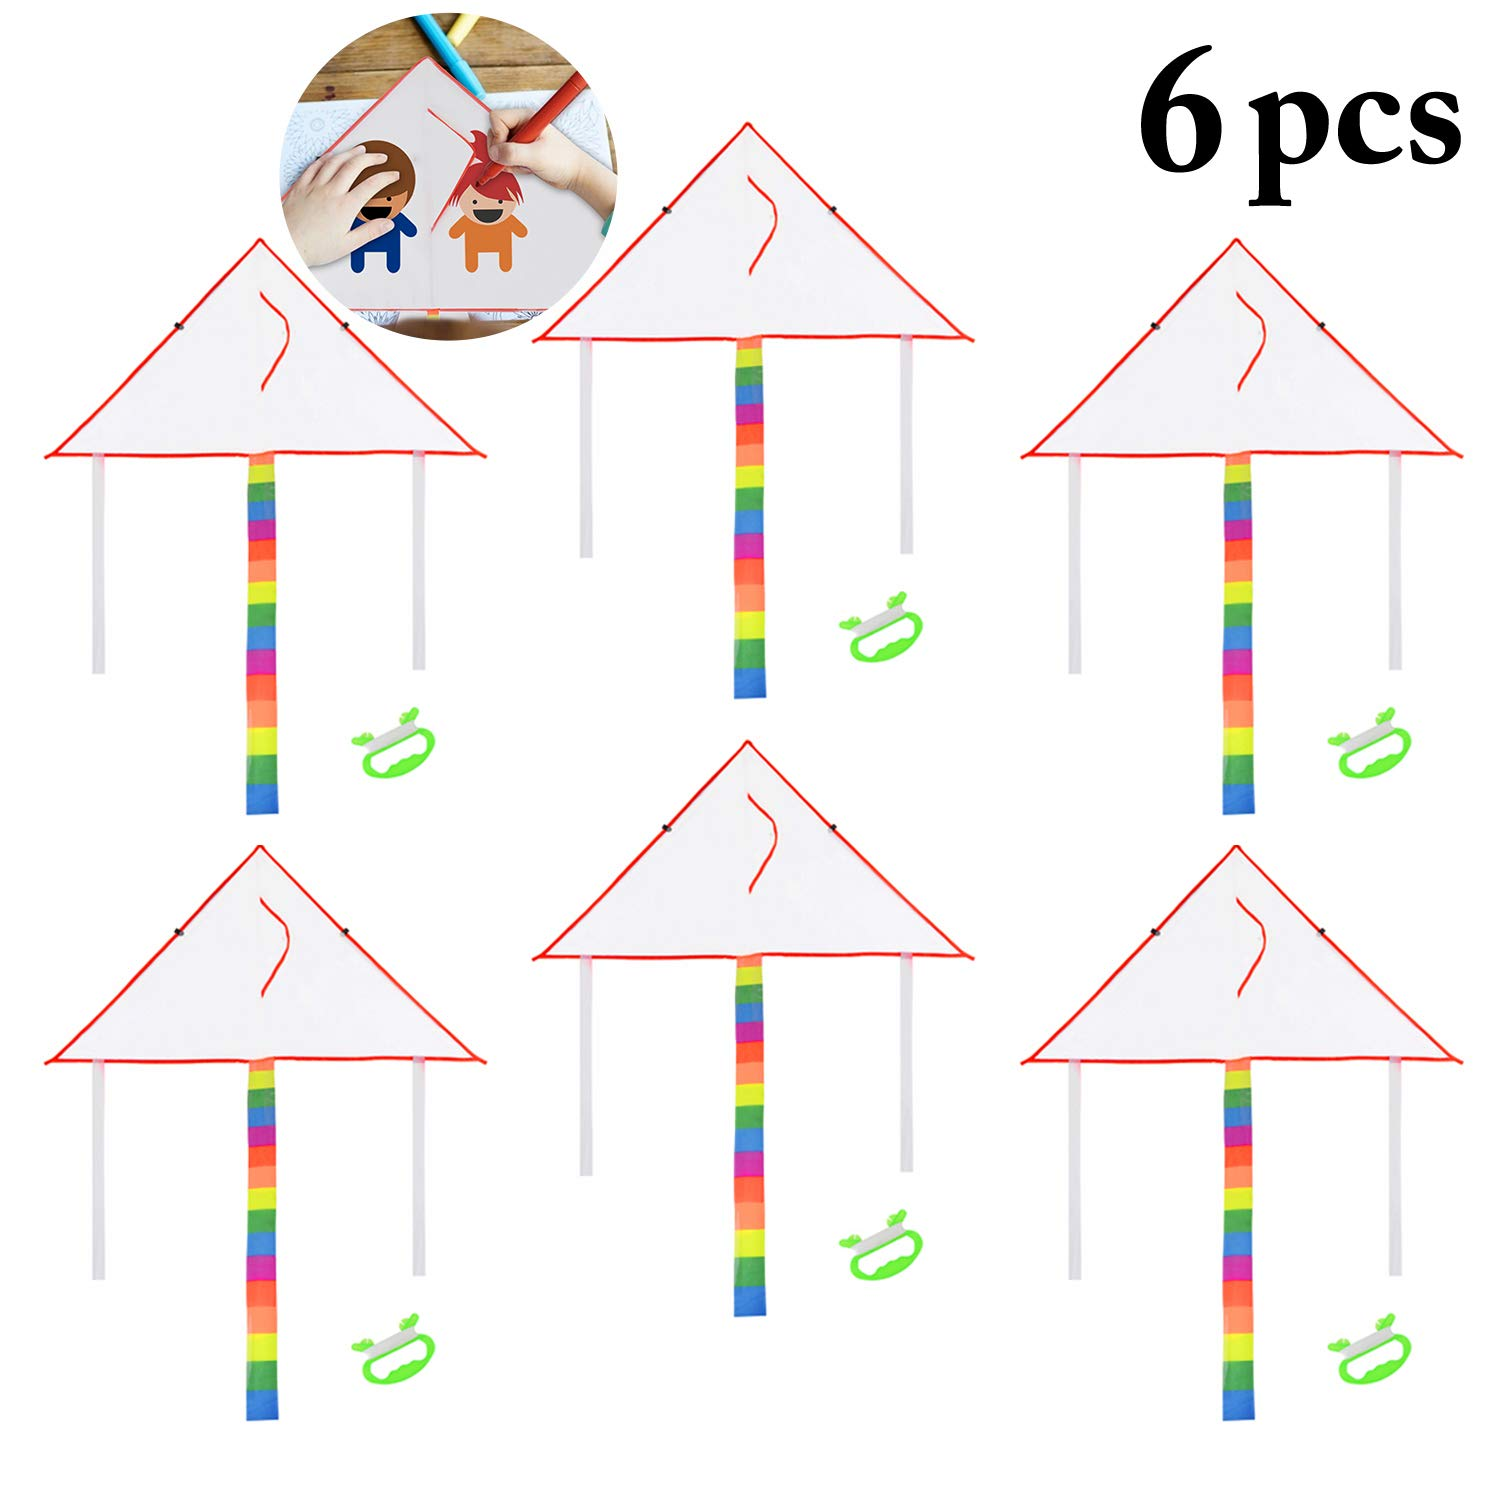 Joyibay DIY Kids Kite Kites Making Painting White Paper Blank Kites with Swivel Line for Boys & Girls Outdoor Park Beach Grassland Activities(6PCS)